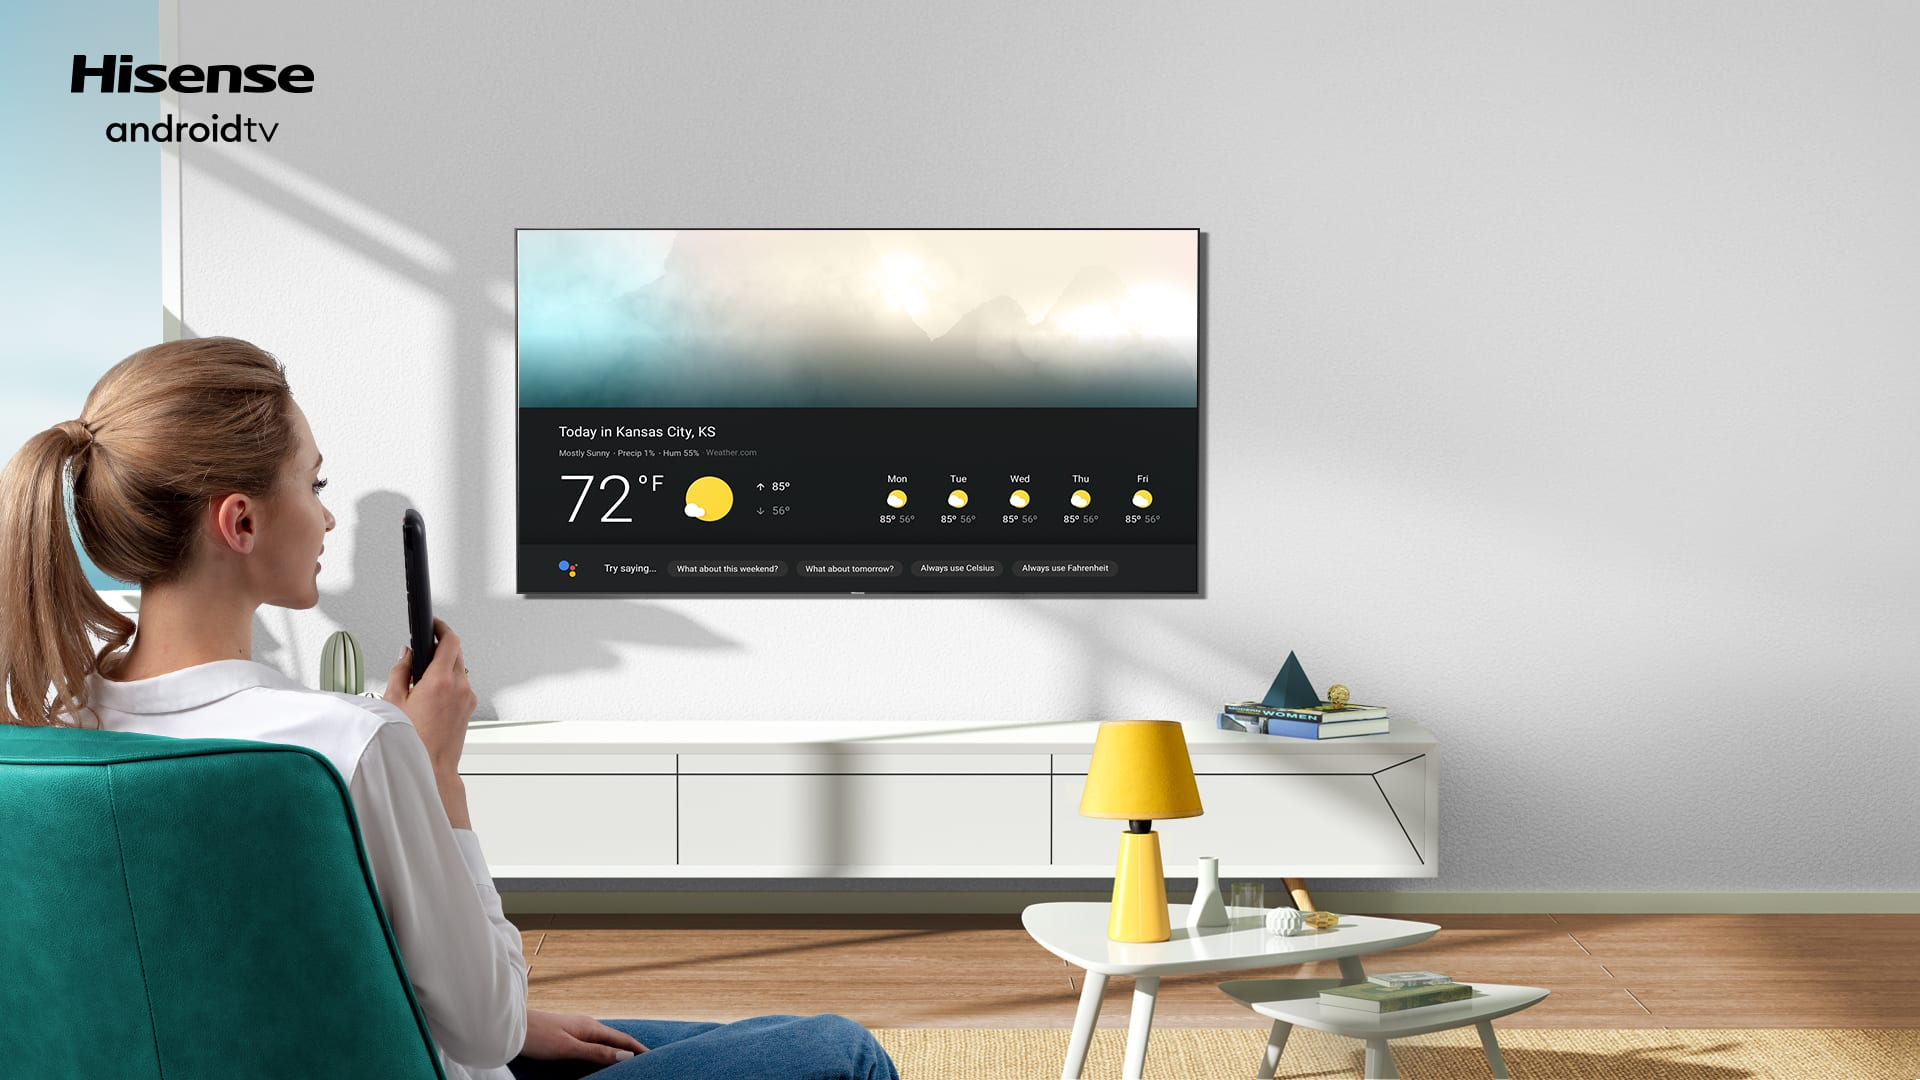 Background-Android-tv-presentation-google-assistant-hisense-technologie